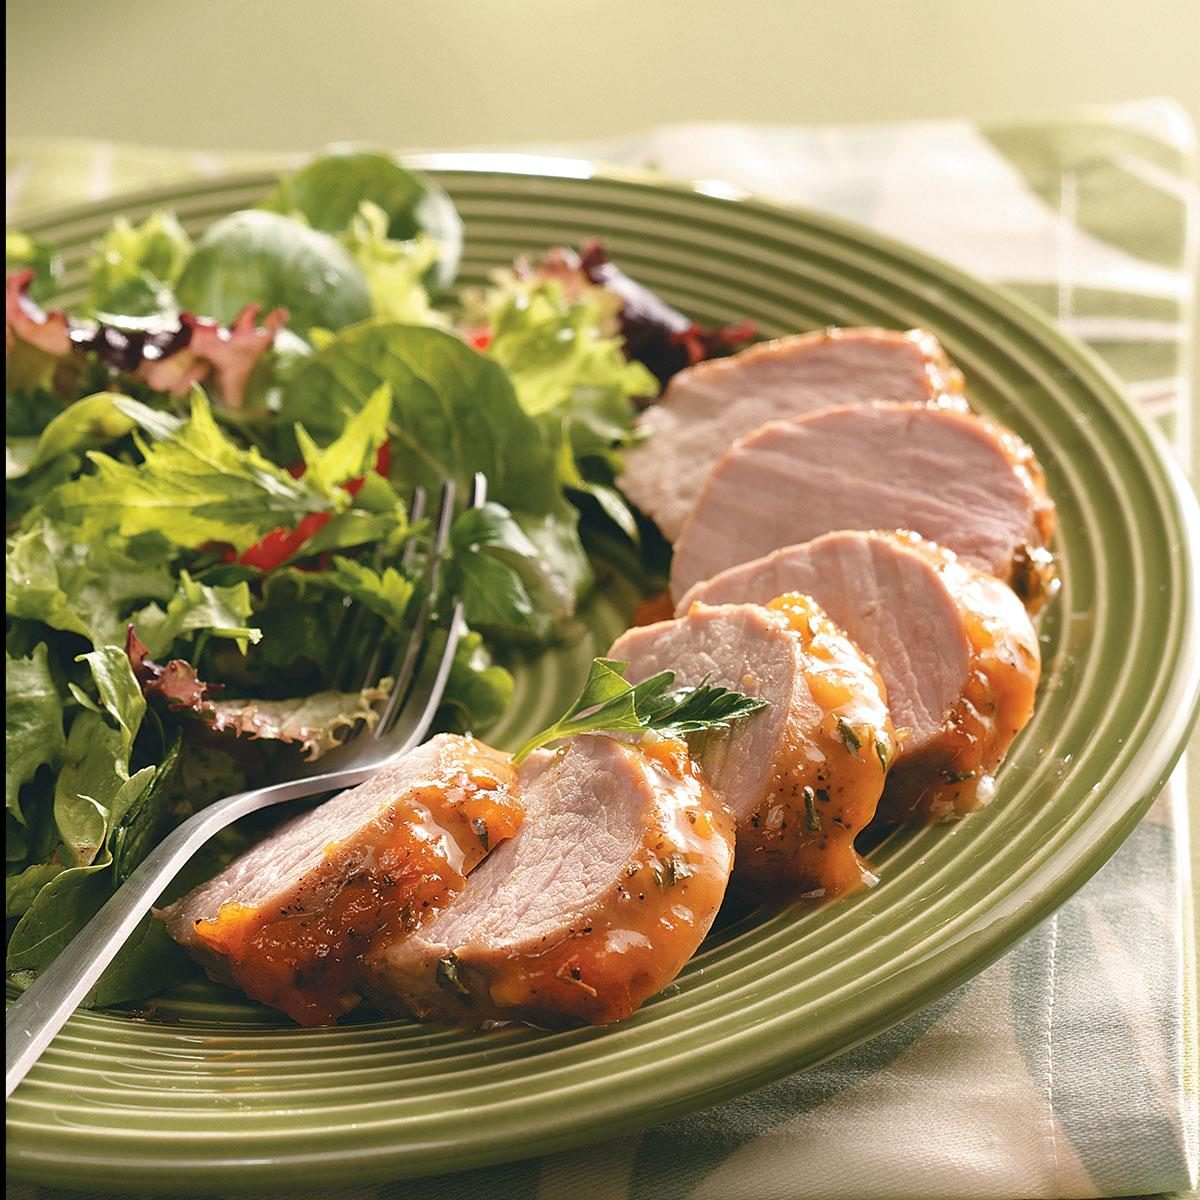 Pork loin apricot sauce recipe